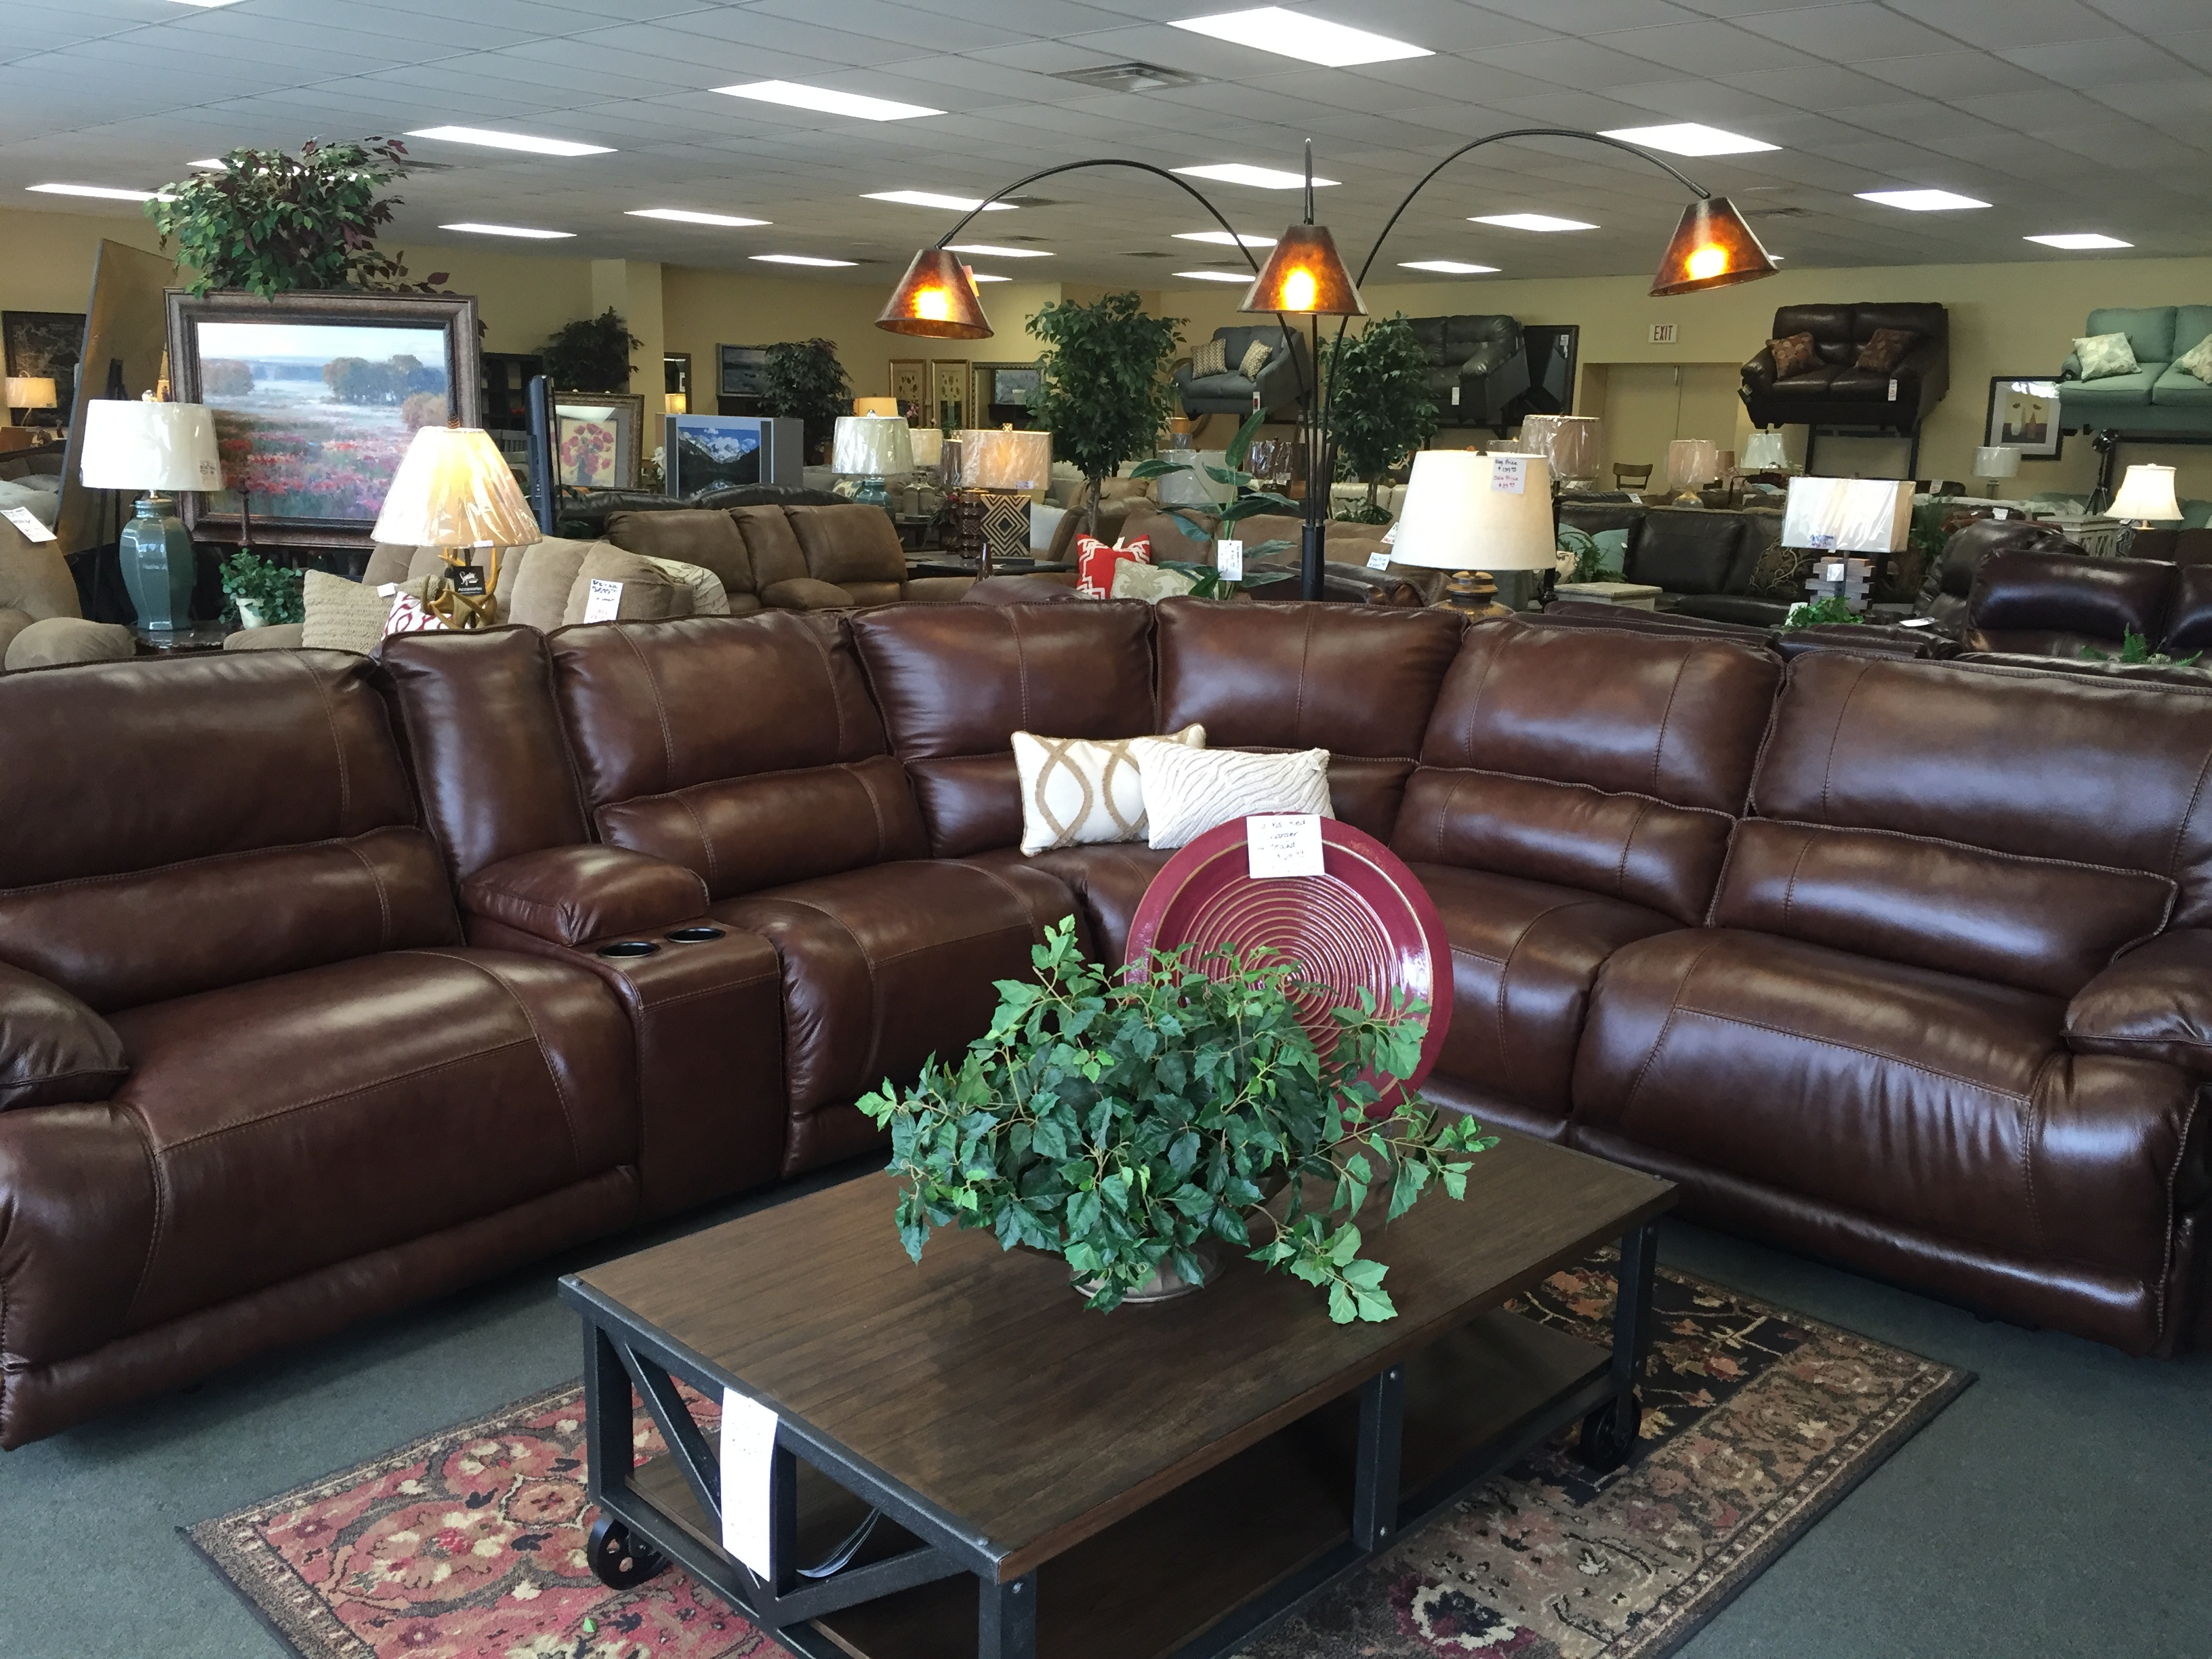 Furniture Show Place Wholesale Sleep Coupons Near Me In Lake City 8coupons